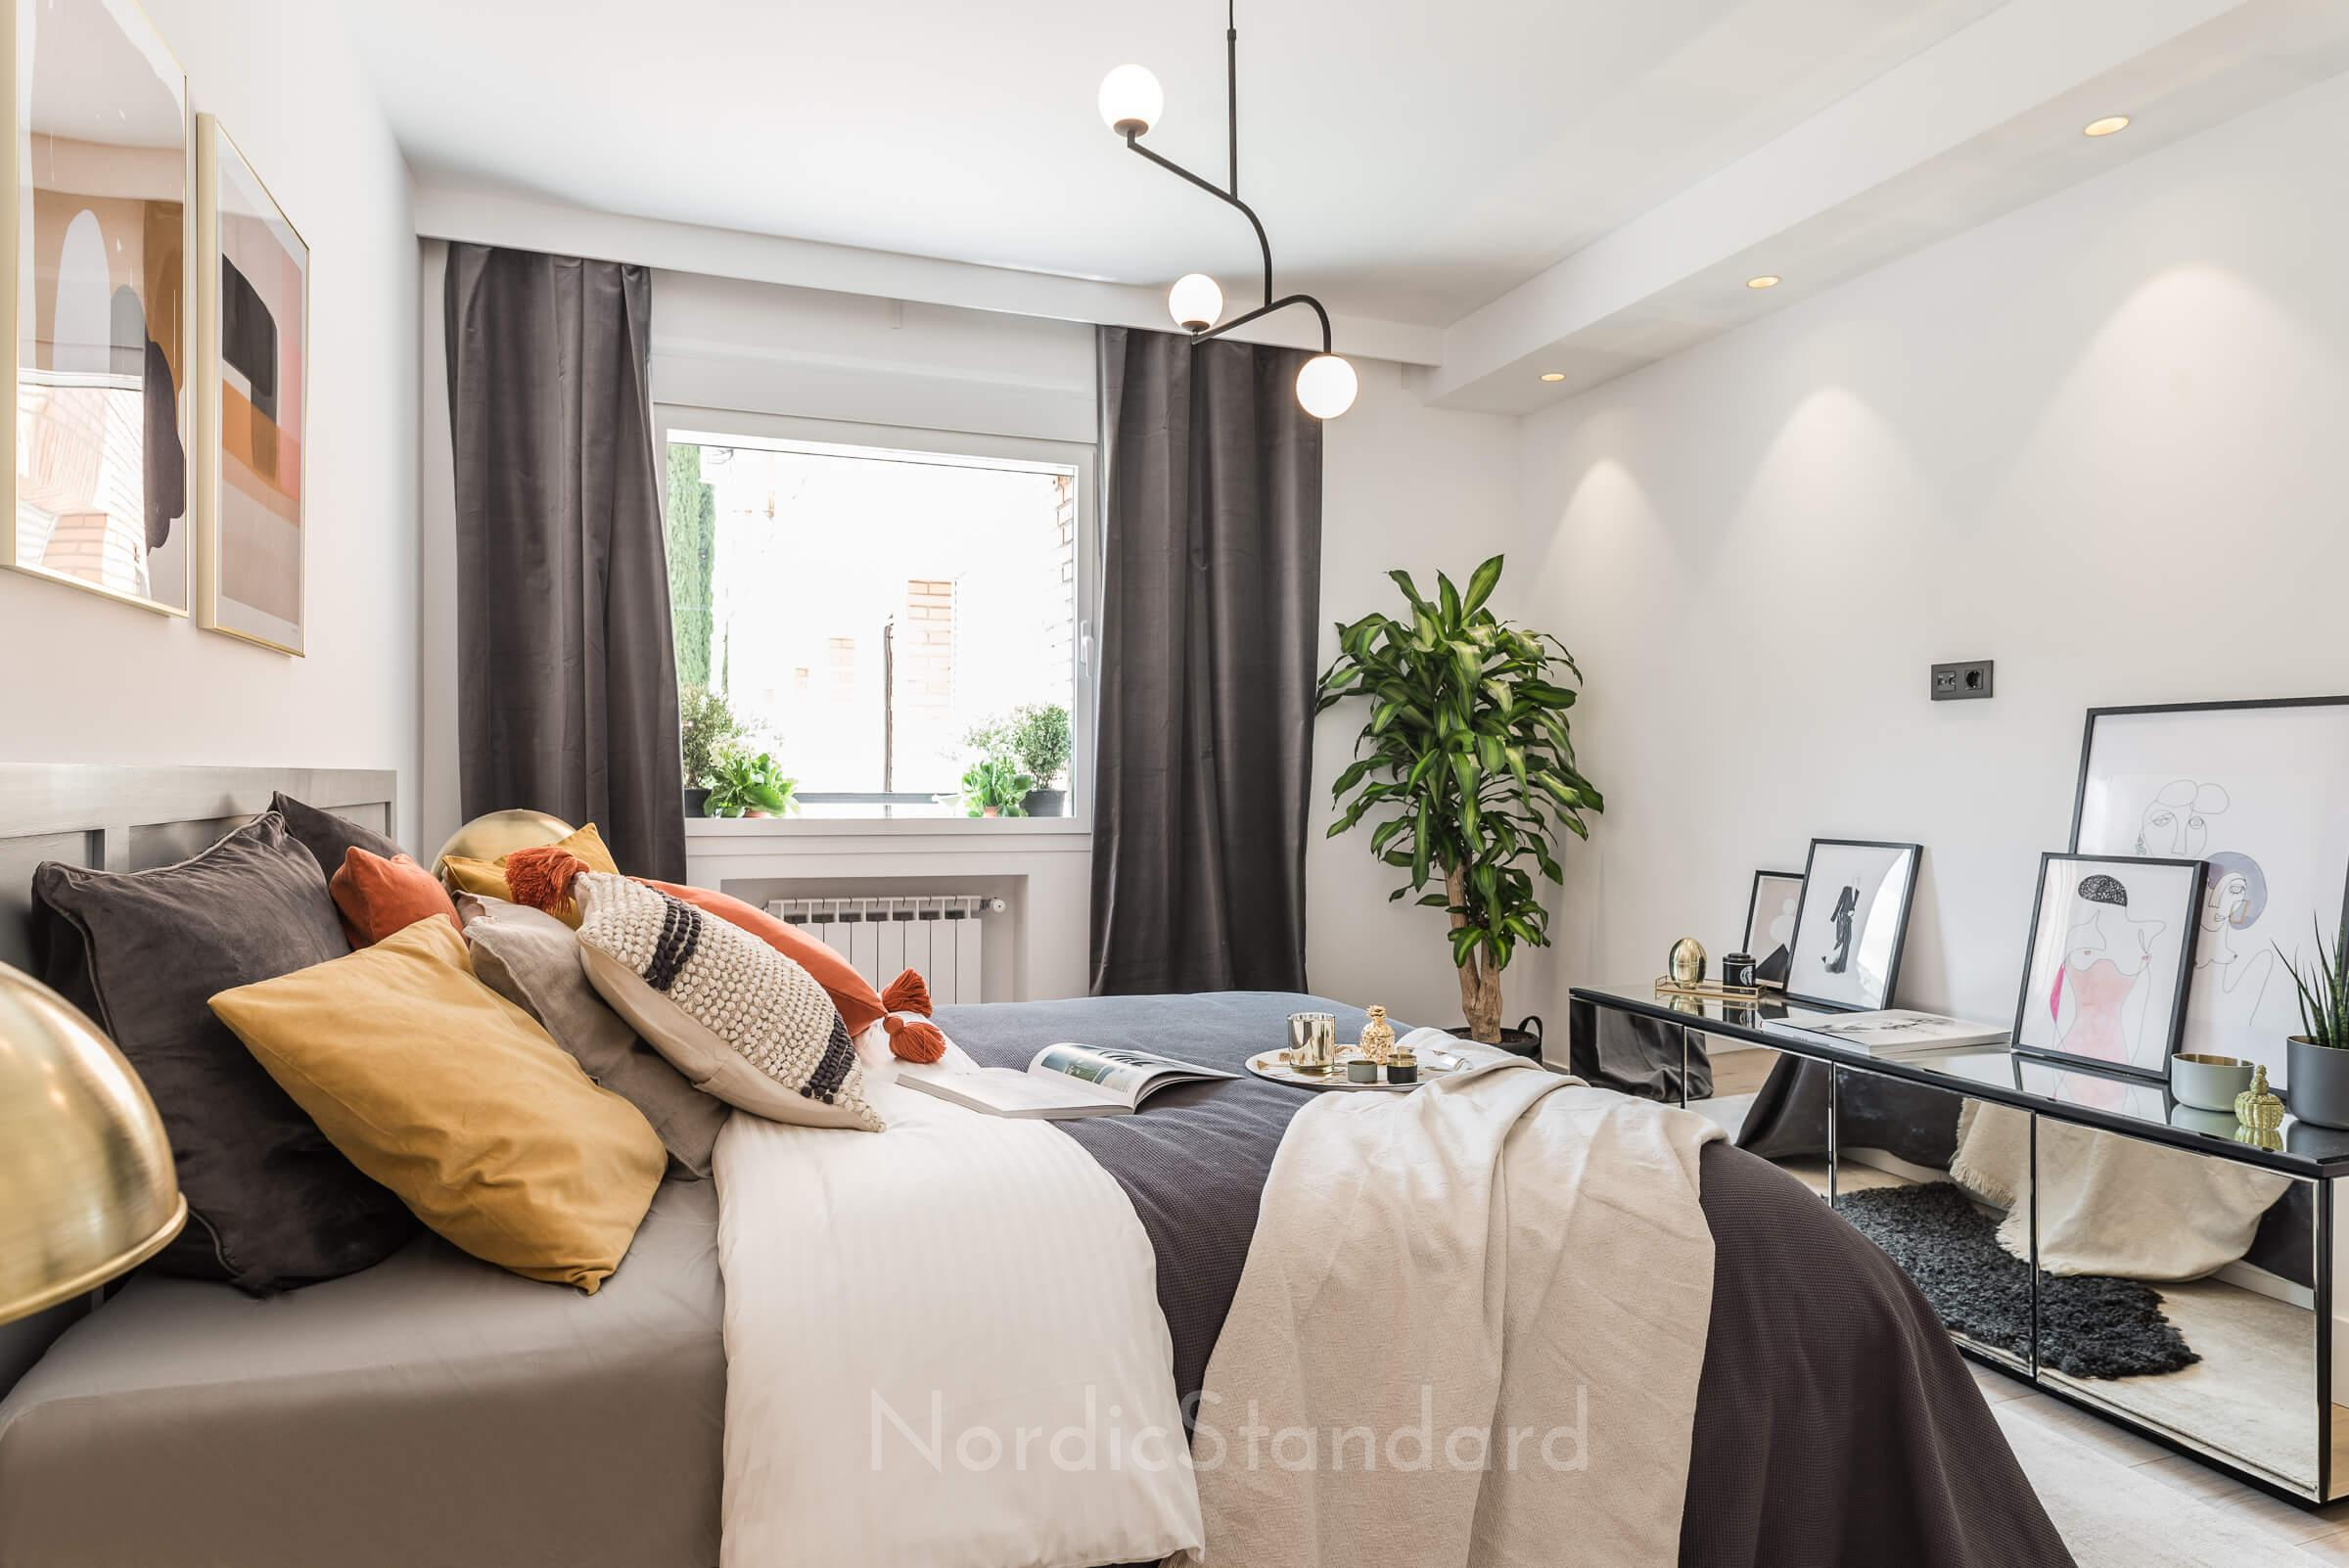 Stil contemporan cu influențe scandinave într-un apartament din Madrid 20